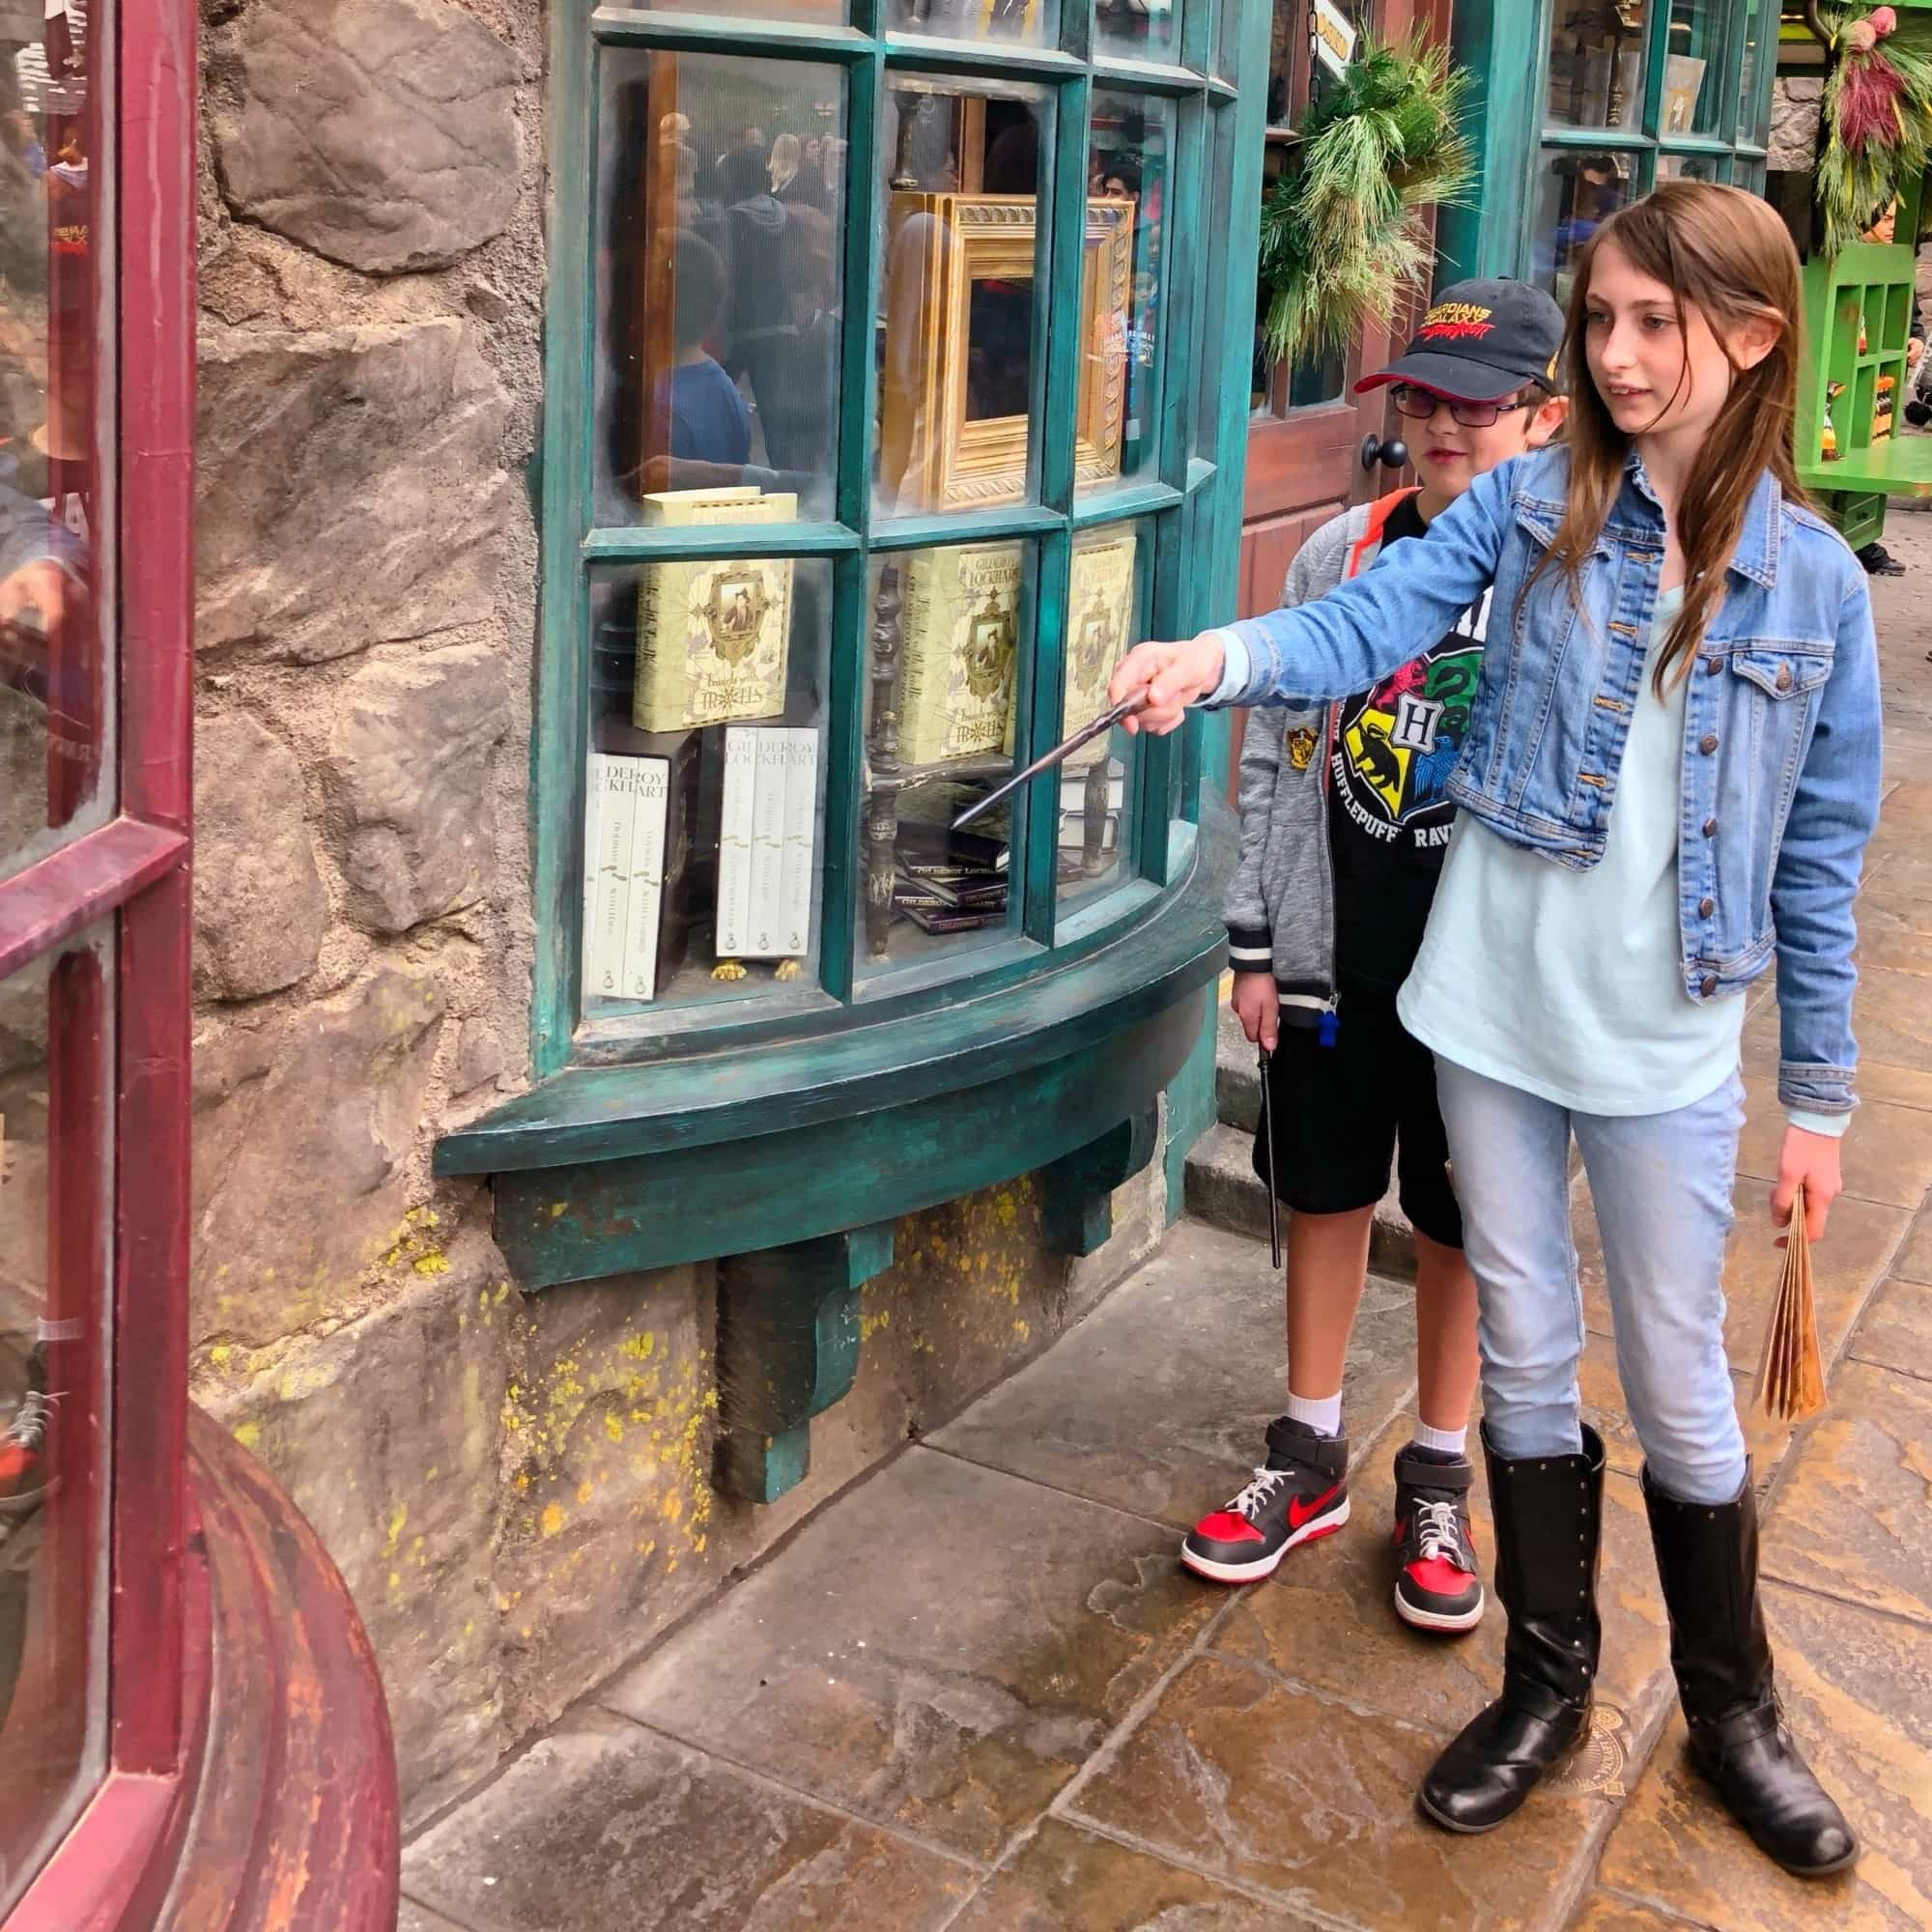 Use wands from Ollivander's to make magic throughout the Wizarding World of Harry Potter